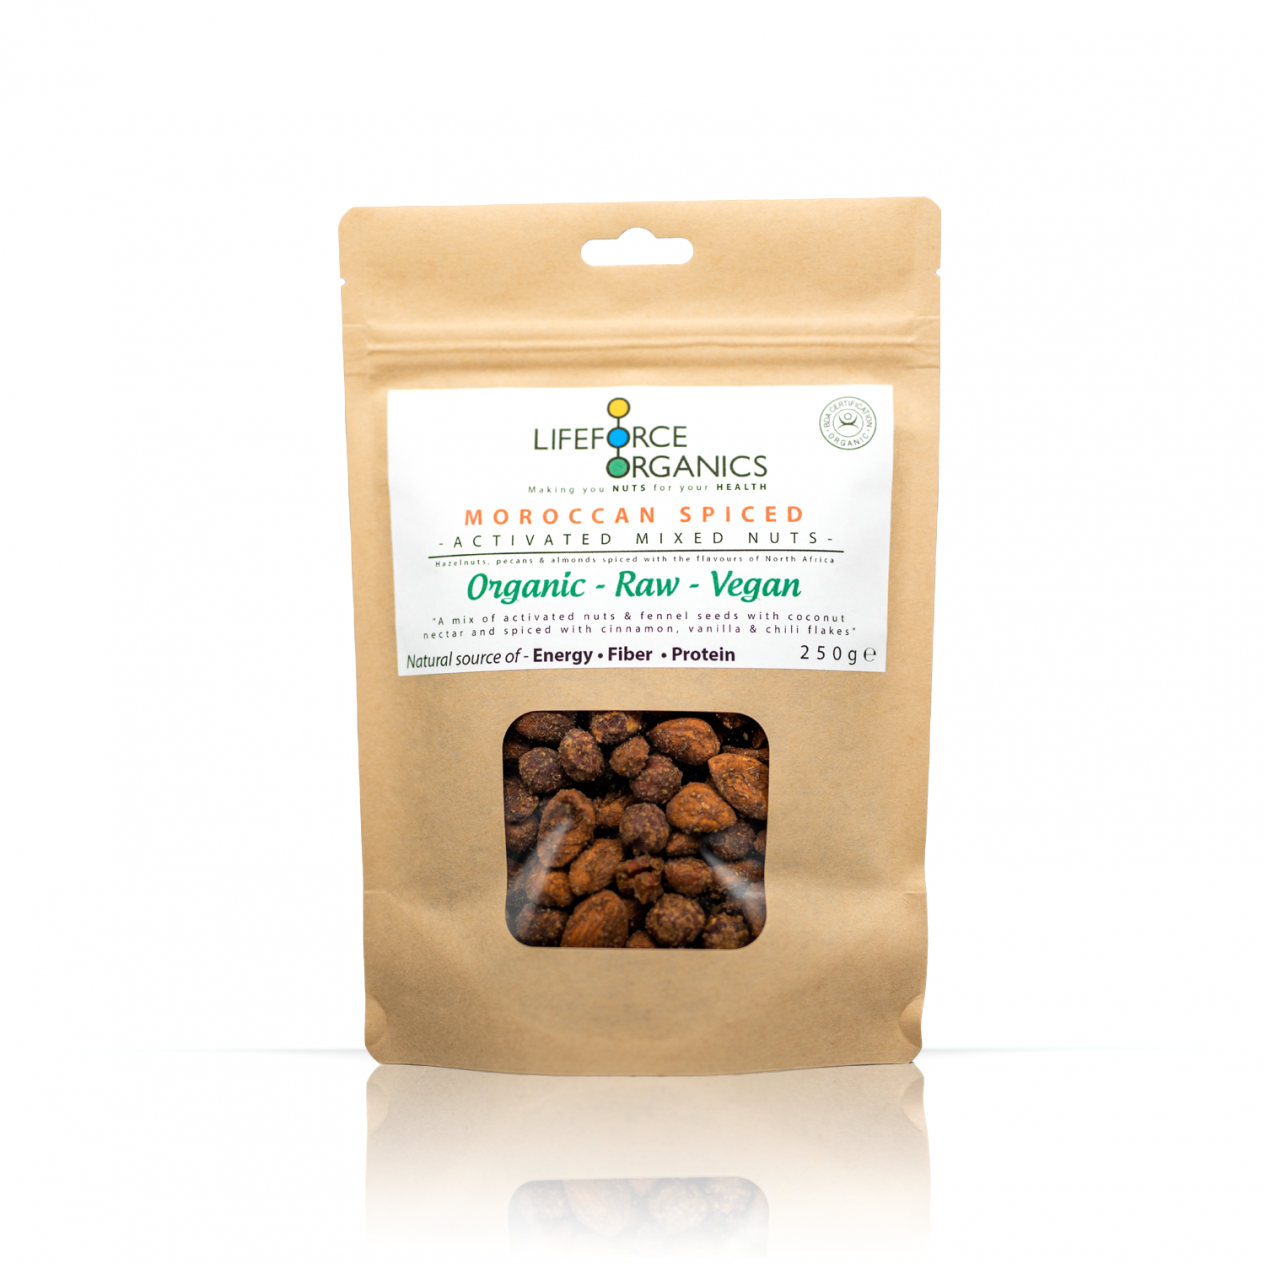 Moroccan Spiced Activated Mixed Nuts (Organic) 250g